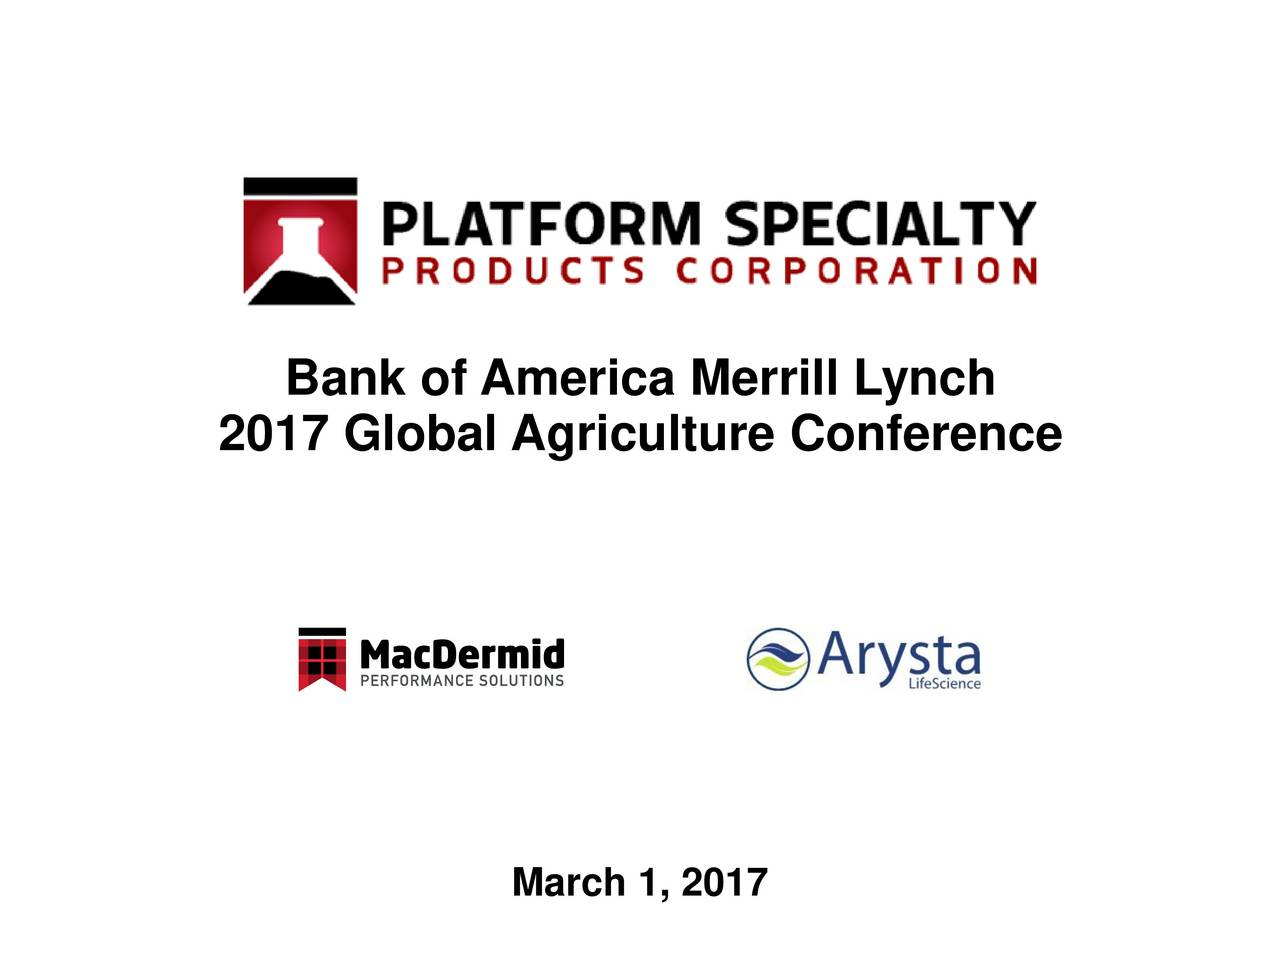 2017 Global Agriculture Conference March 1, 2017